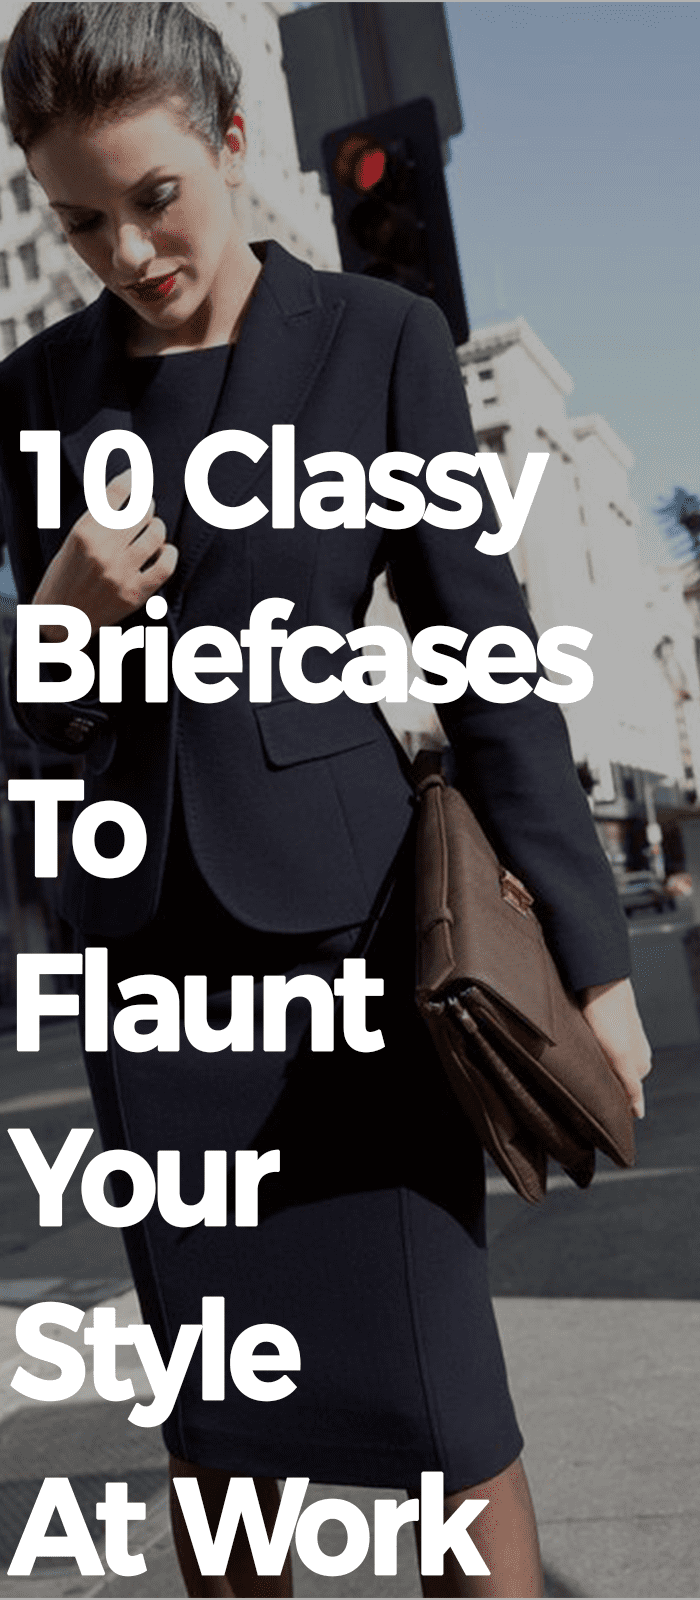 10 Classy Briefcases To Flaunt Your Style At Work!